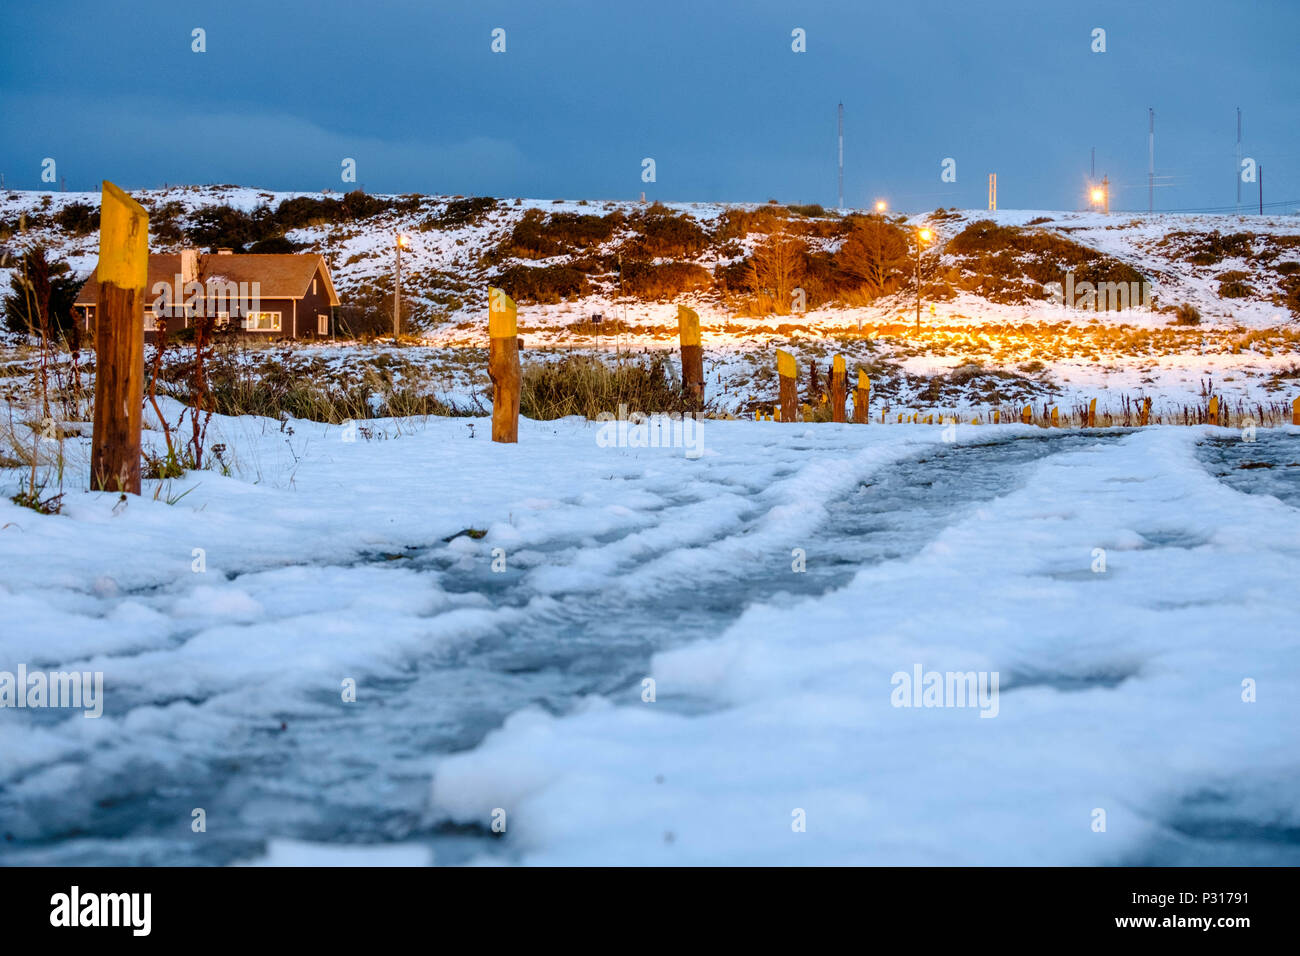 The path next to the 'Bahía Encerrada' in Ushuaia is covered by snow and ice.If it is not too windy, this place is ideal for an evening walk. Stock Photo